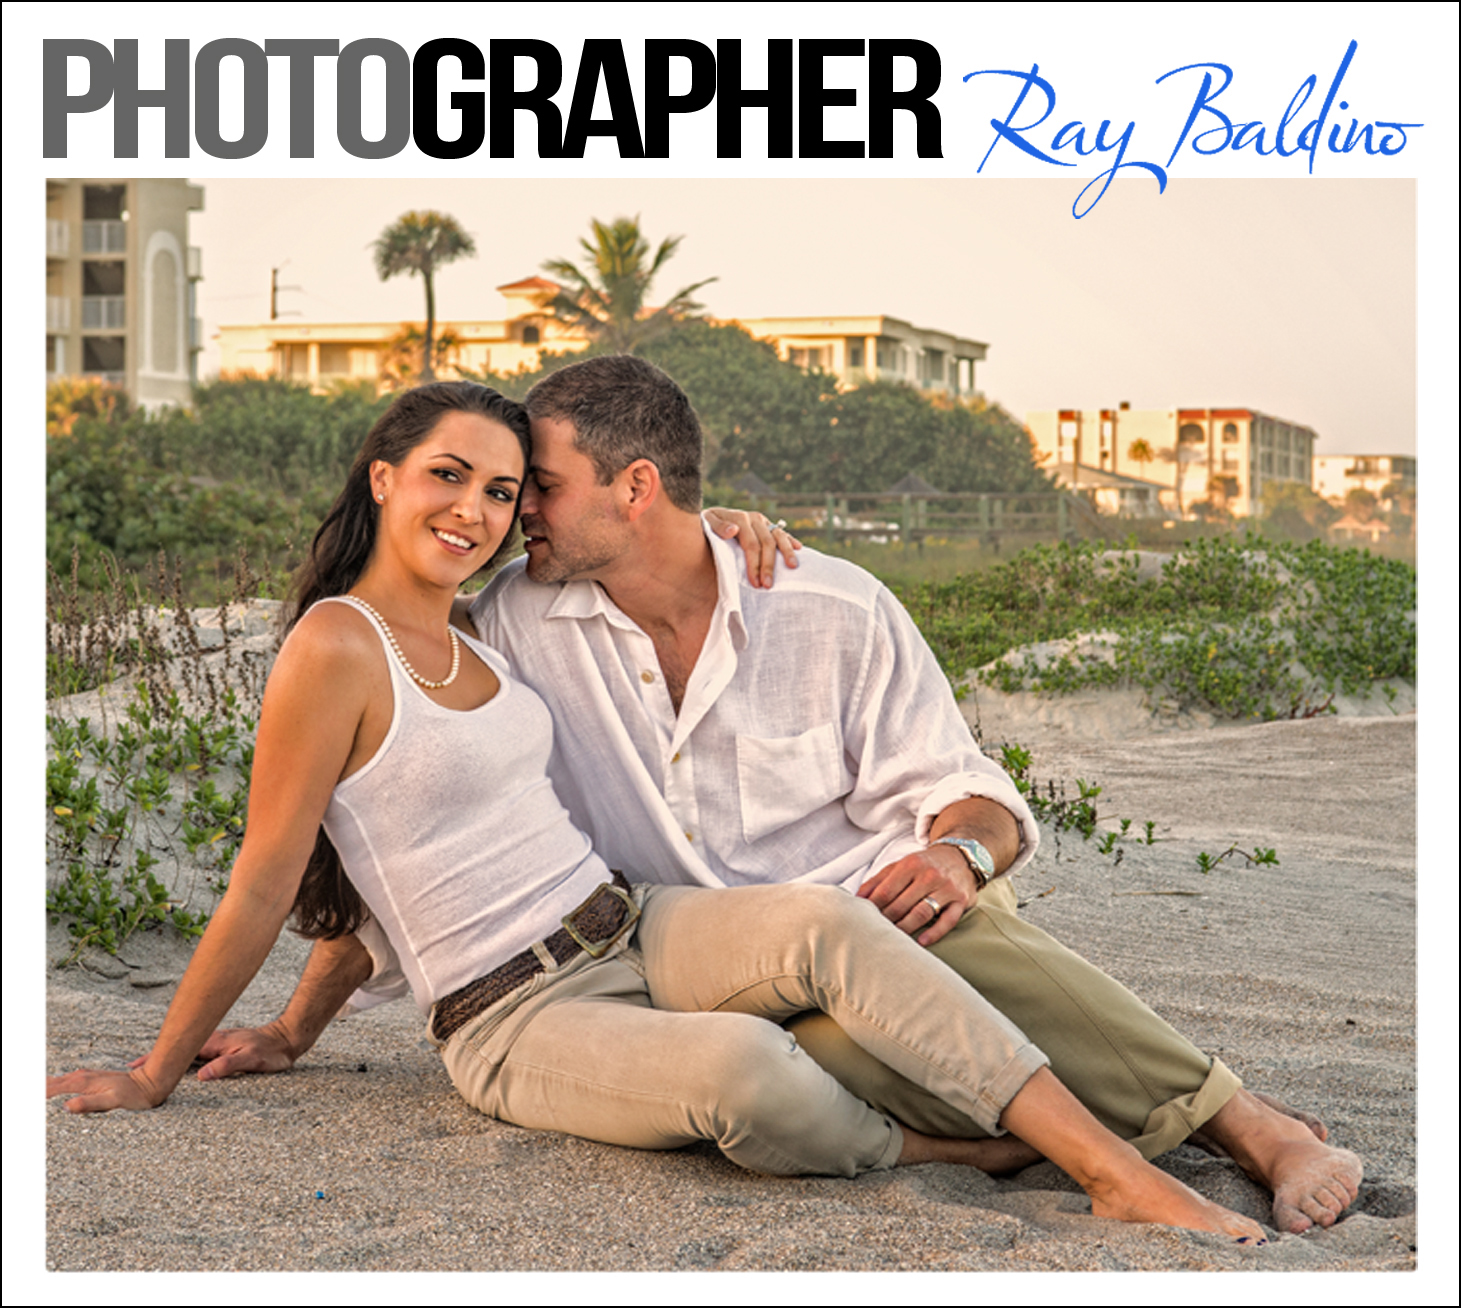 famiily-beach-photography-in-cocoa-beach-florida-by-ray-baldino-this-image-is-of-a-husband-and-wife-sitting-on-the-sand-in-the-sunset-happy-couple